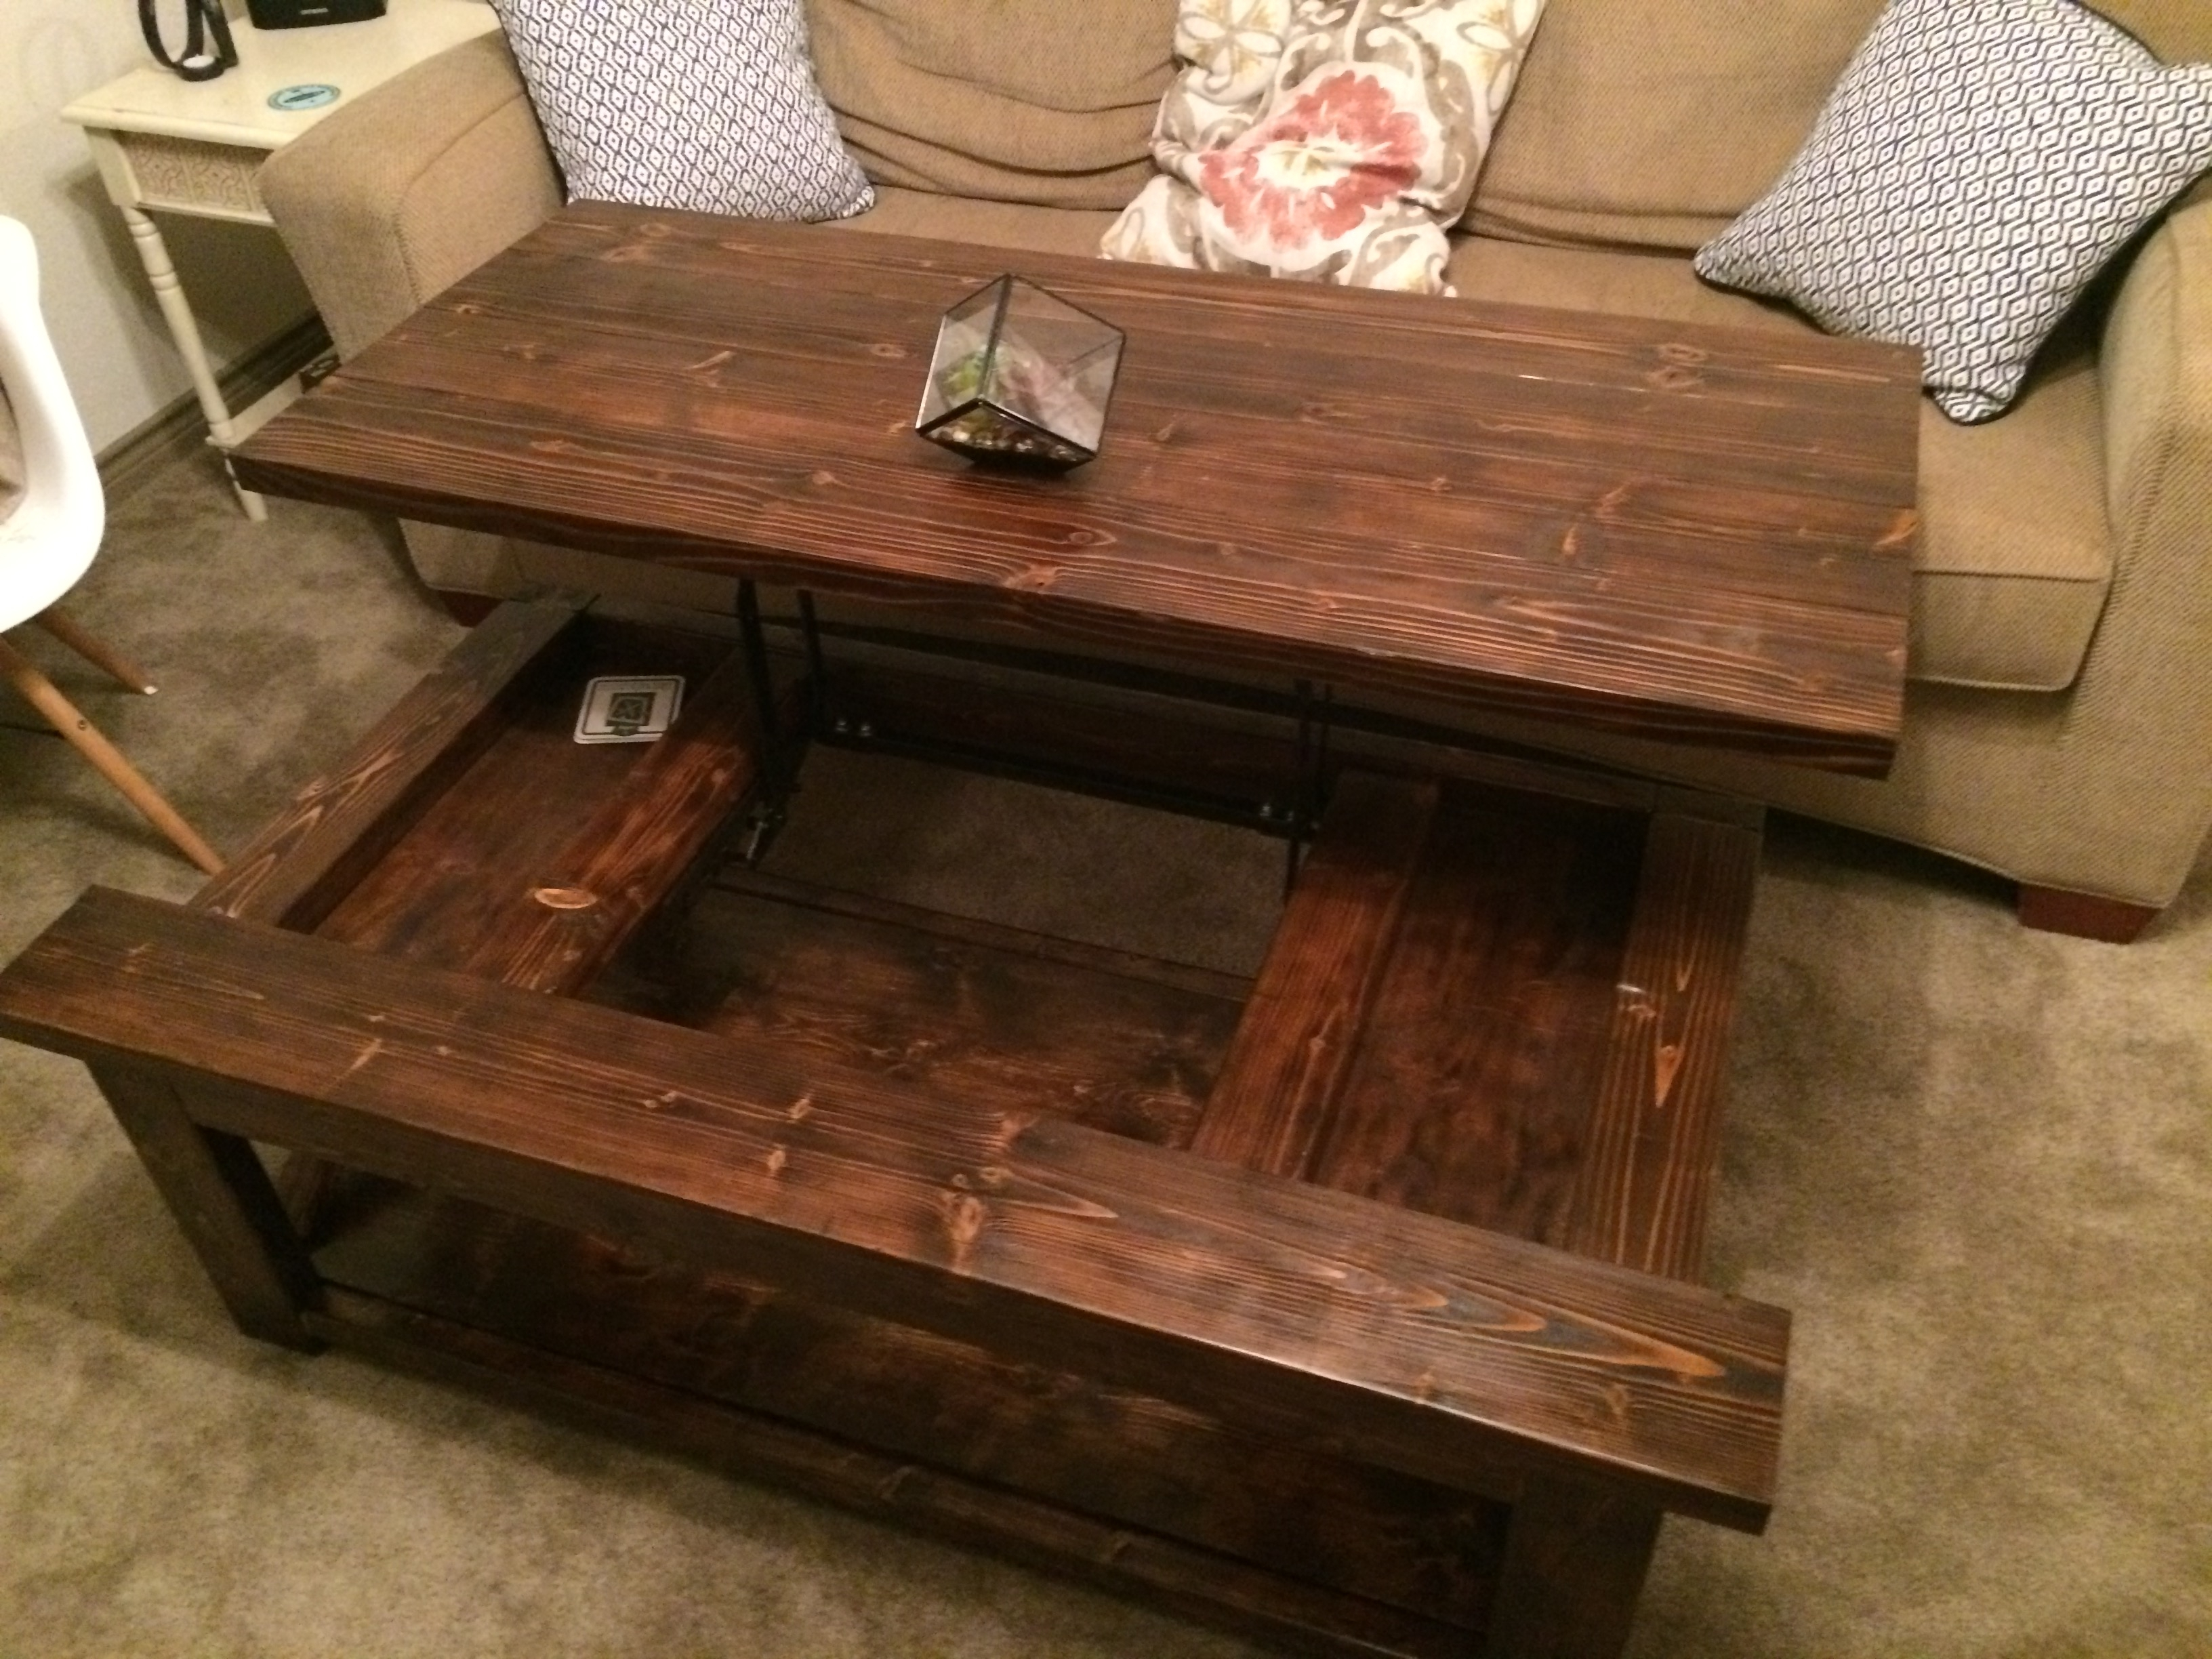 2017 Tillman Rectangle Lift Top Cocktail Tables Intended For Charming Rustic Lift Top Coffee Table (View 16 of 20)